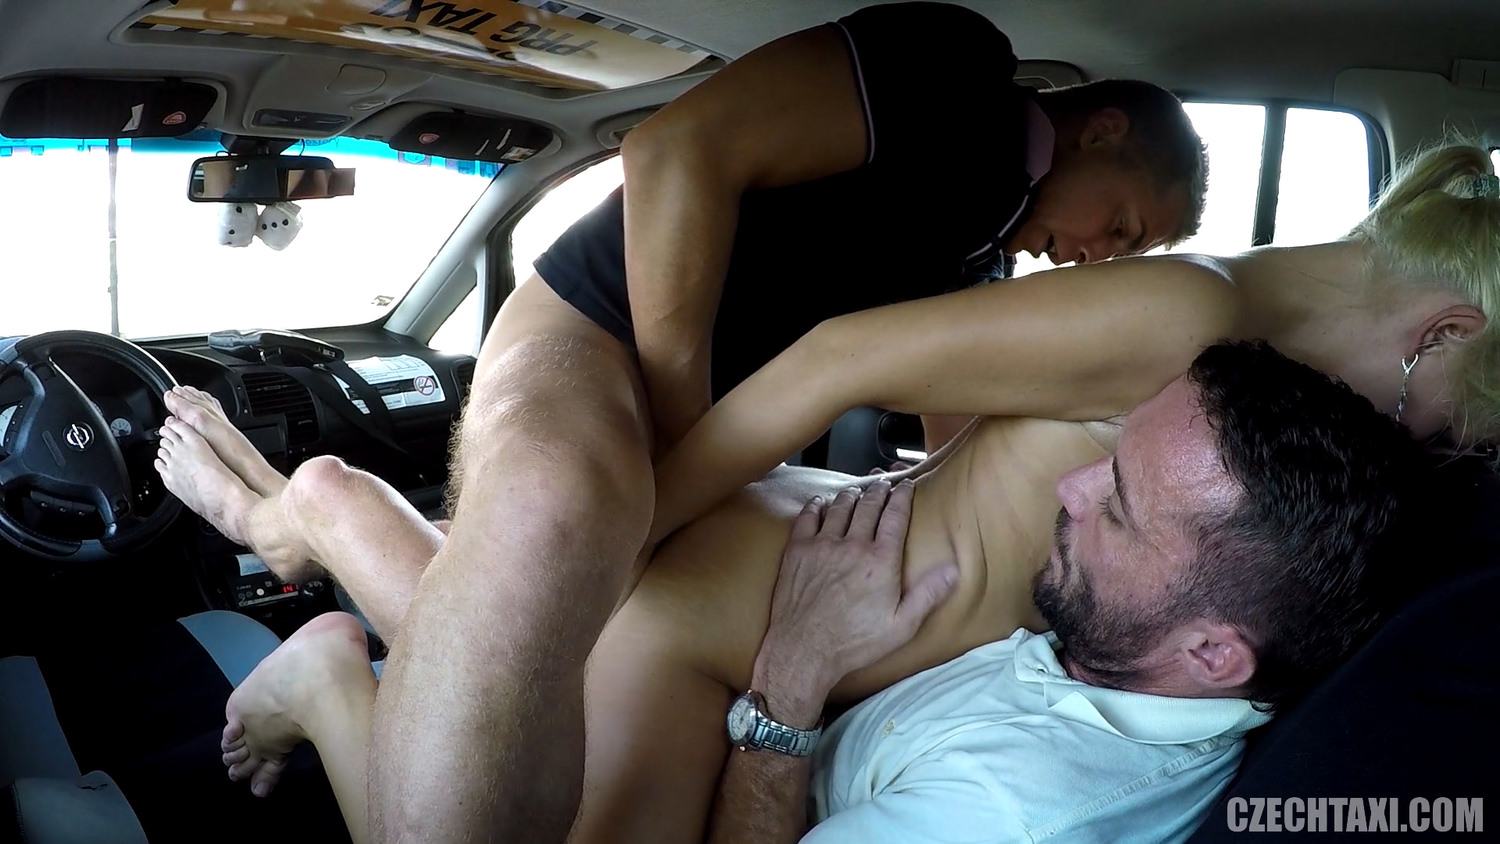 sex v aute czech taxi